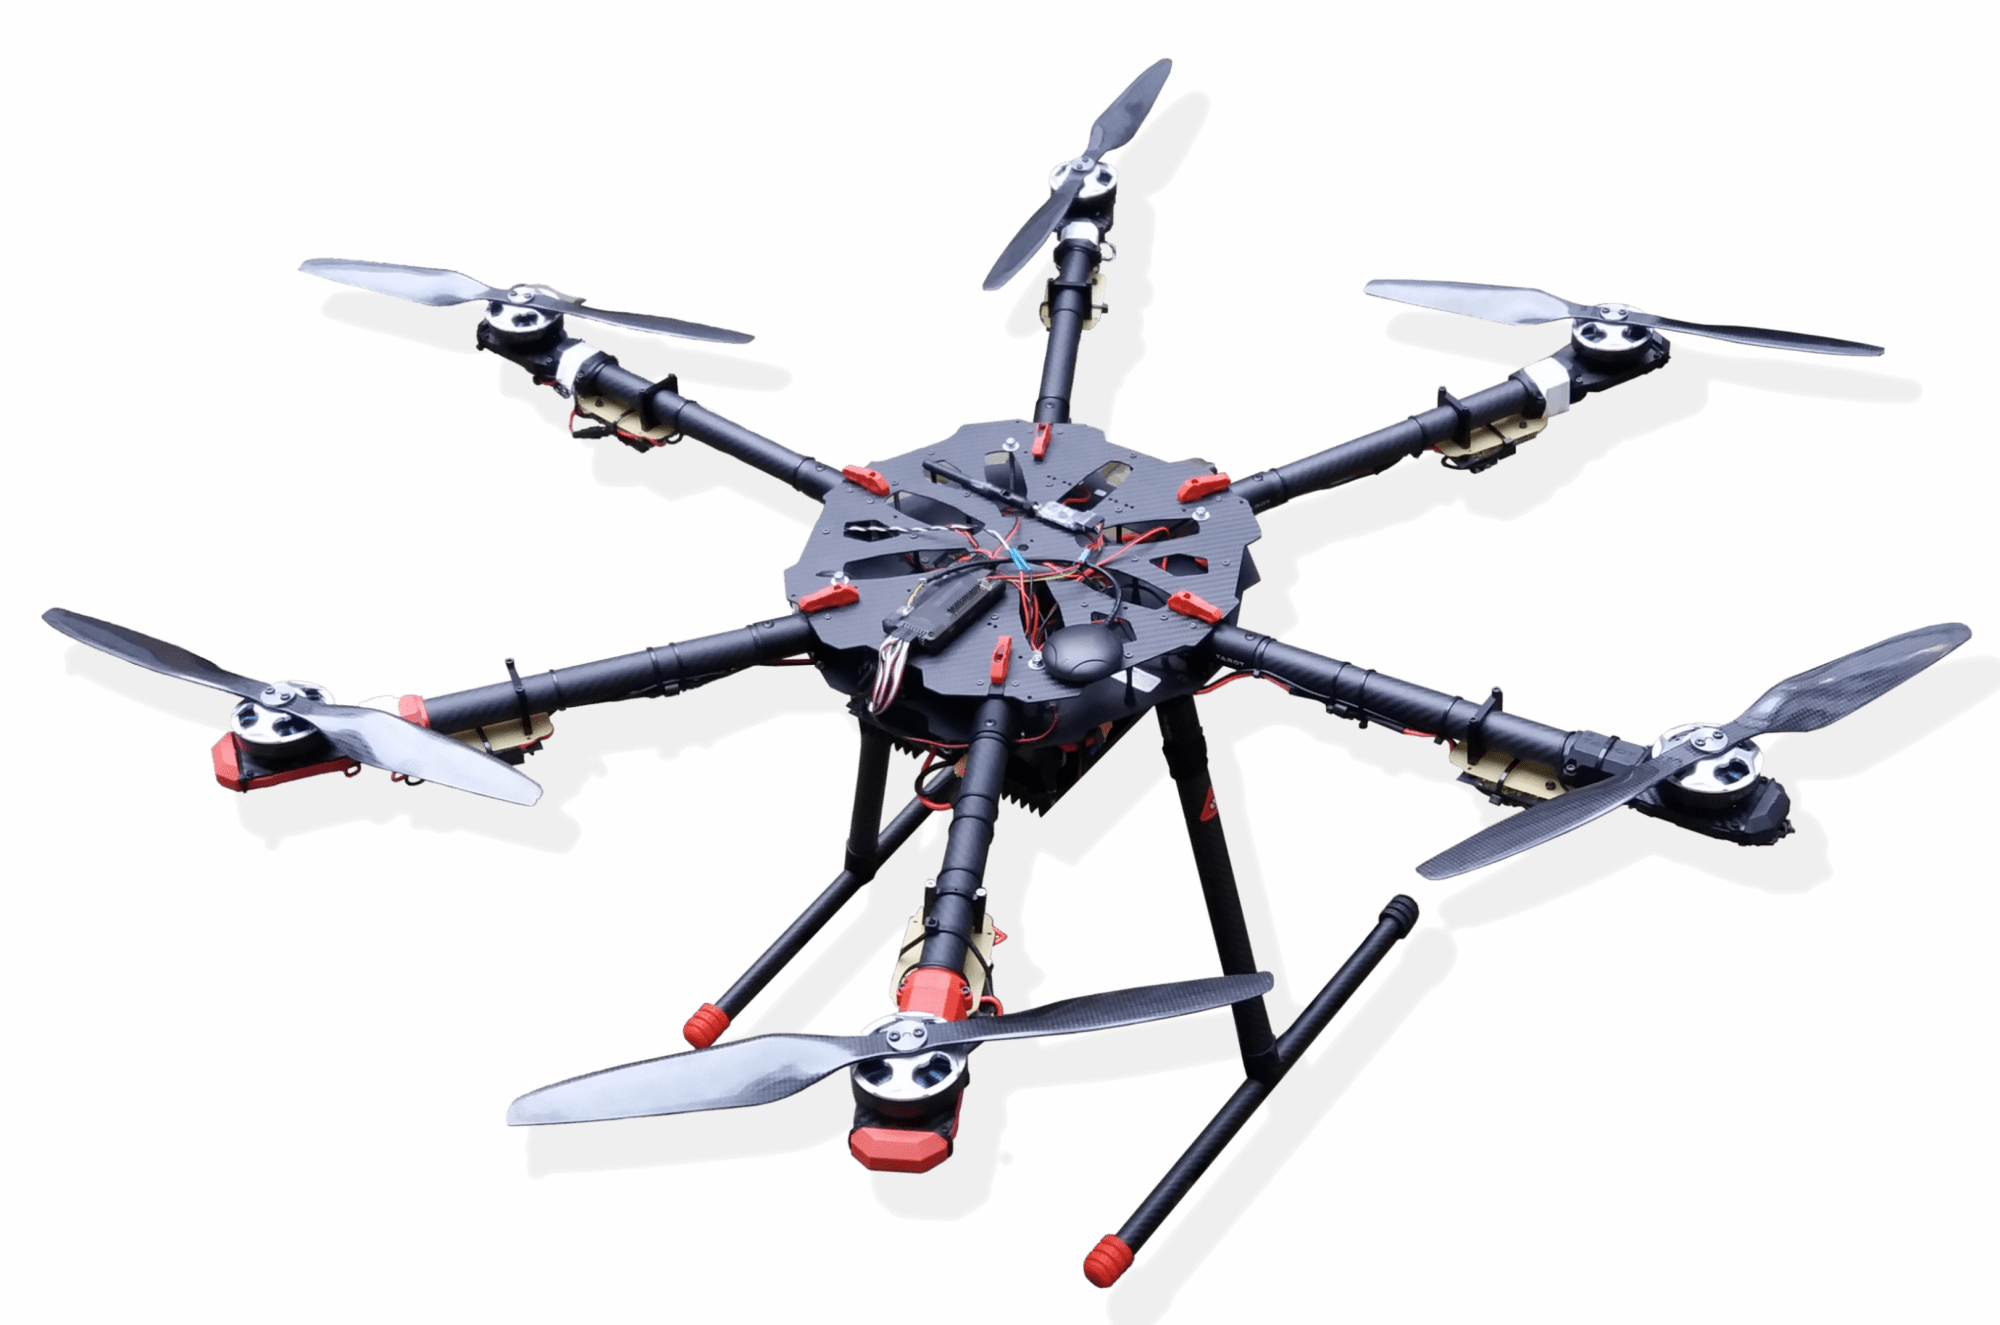 http://tethereddrone.eu/wp-content/uploads/2019/08/dron.png